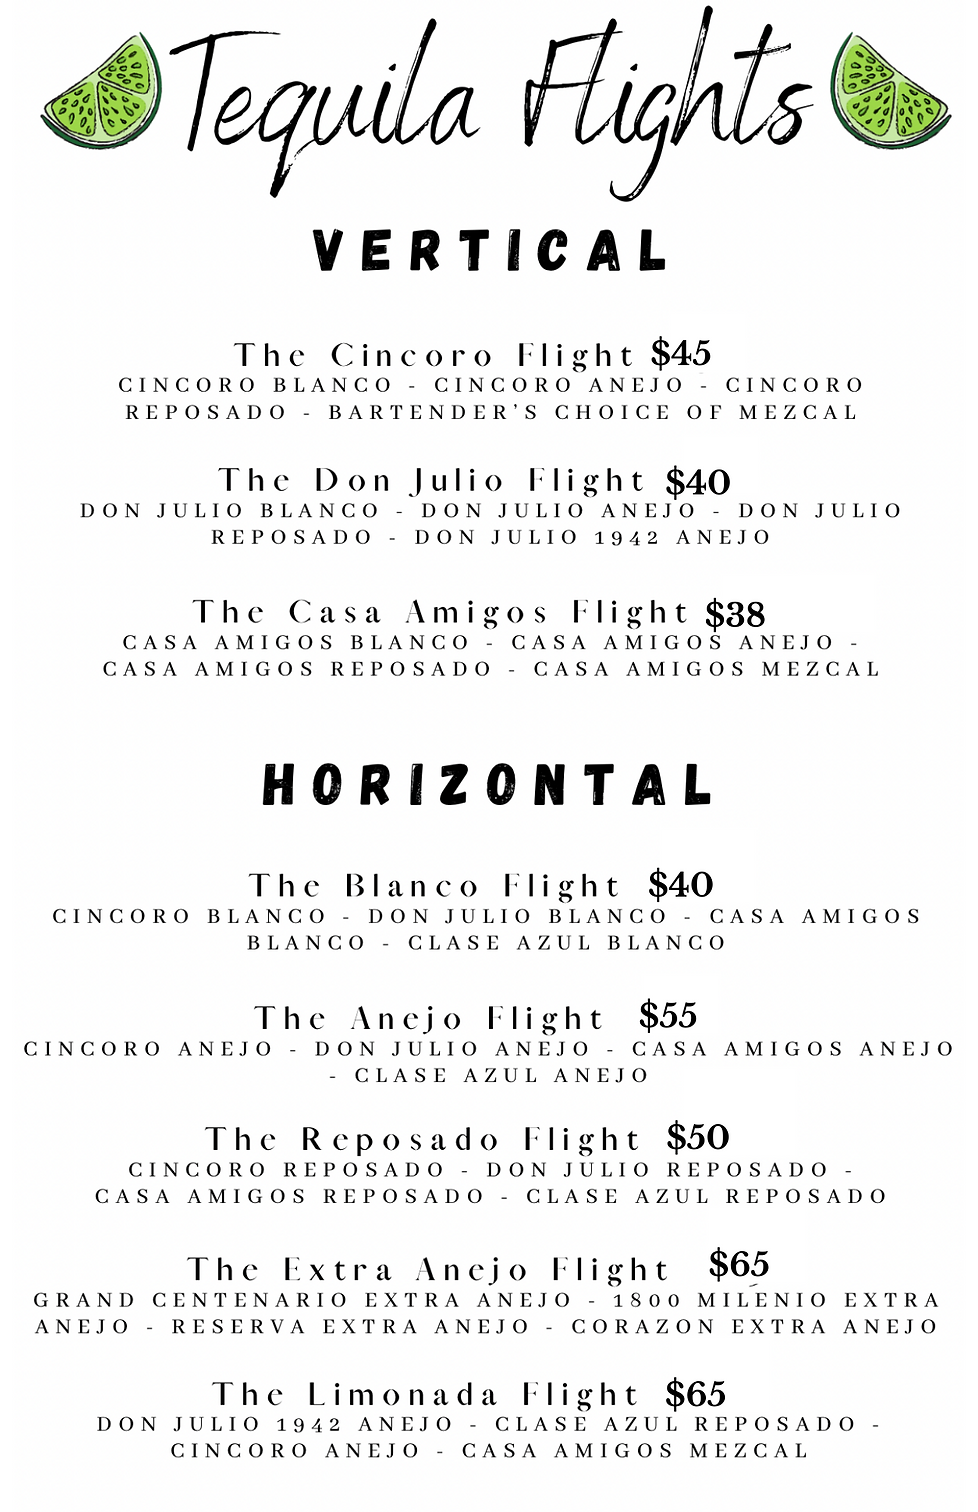 Tequila Flights New Prices.png